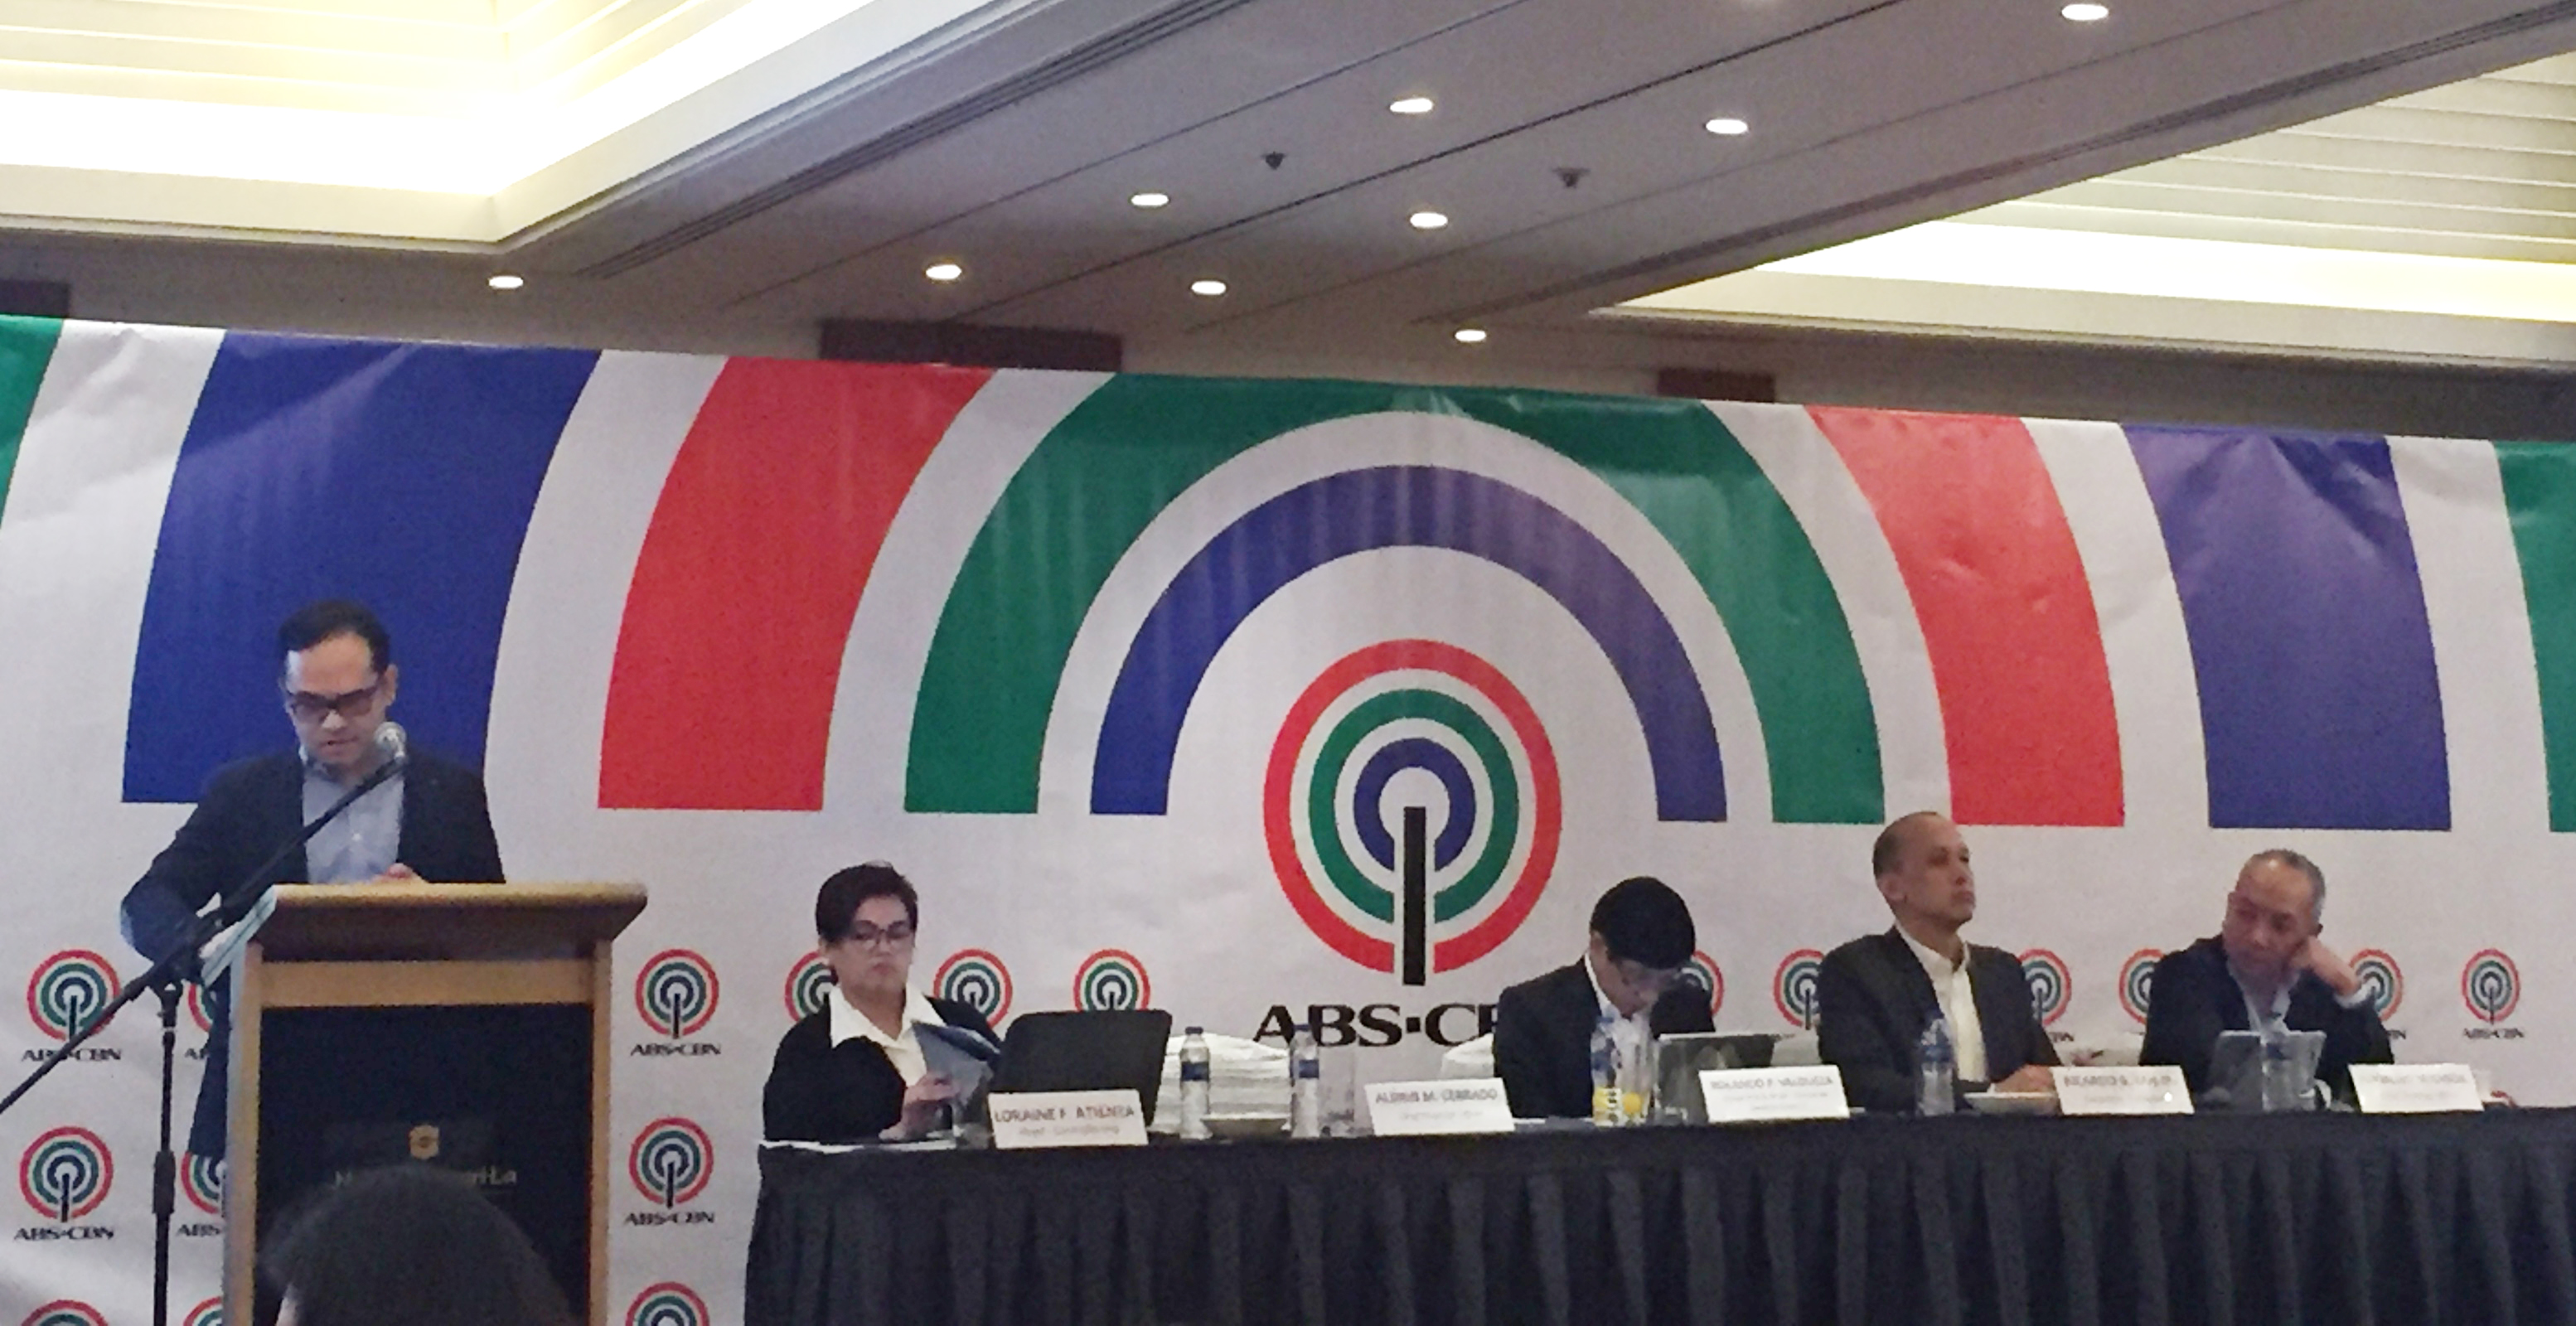 abs cbn hits 2016 target income fueled by election spending